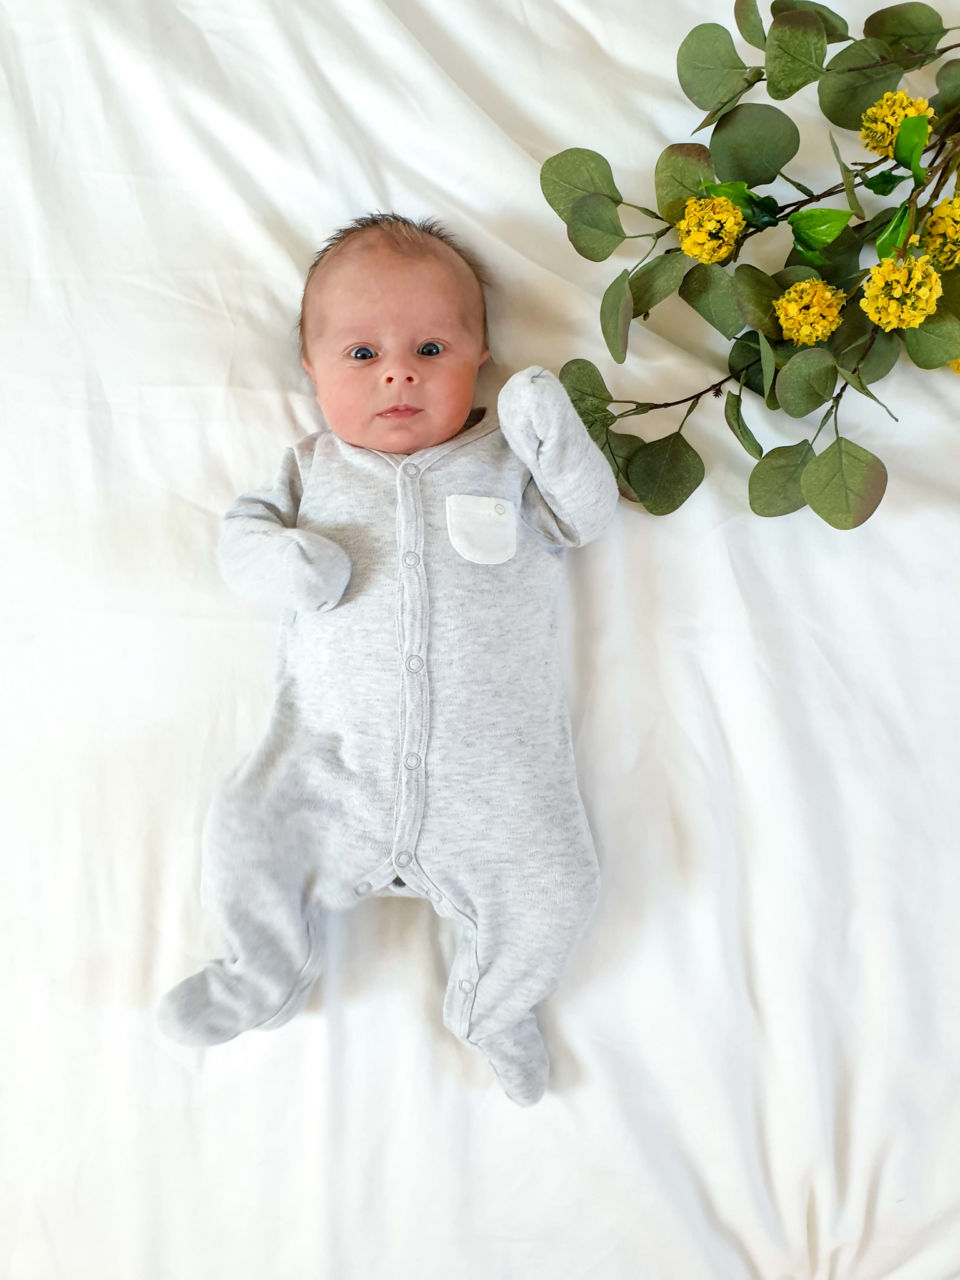 Belles and Babes organic baby clothing subscription review - Mori sleepsuit